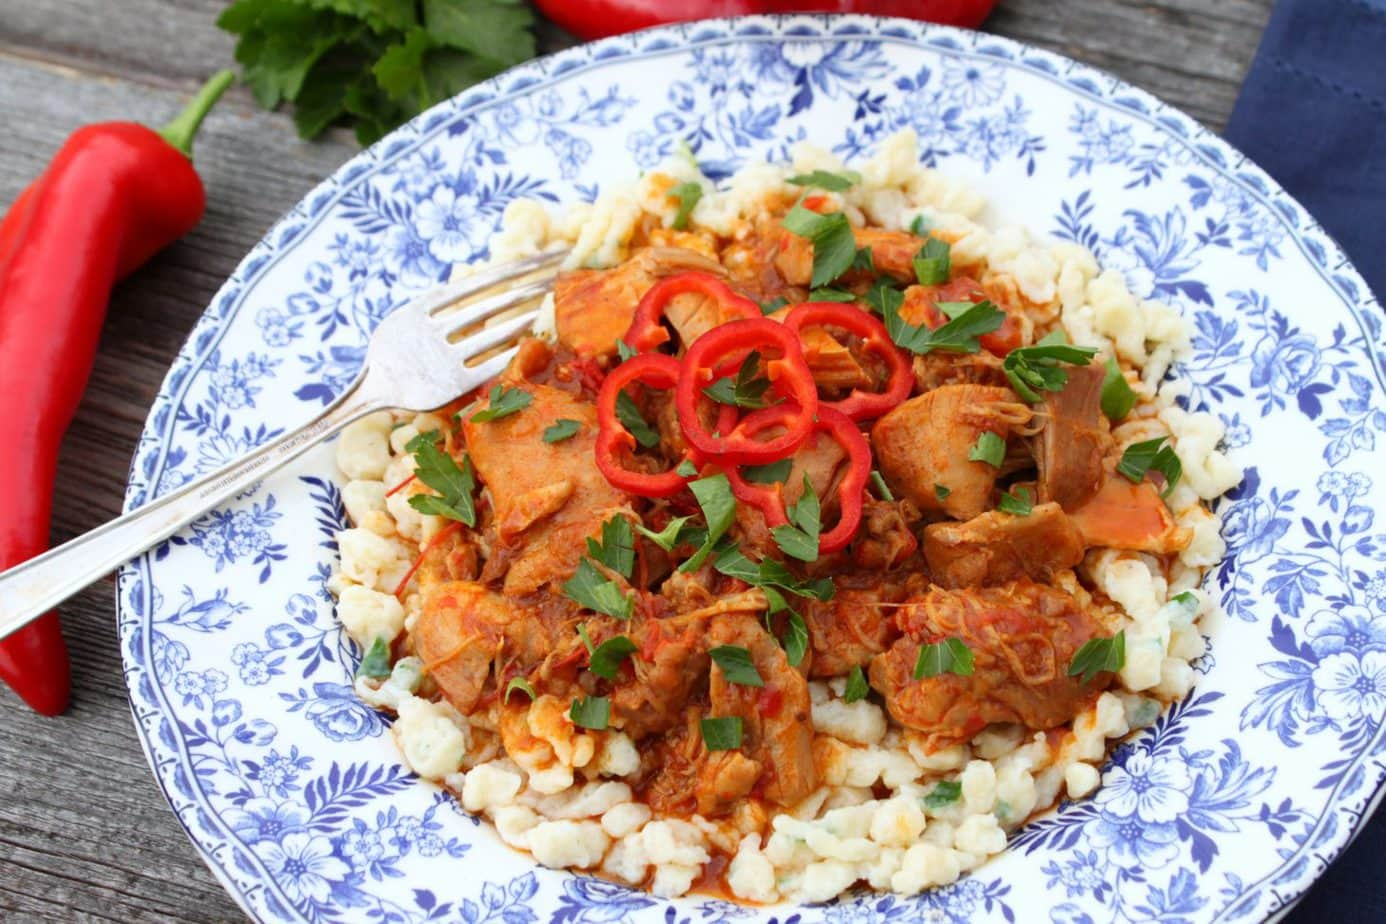 Delicious and Quick Instant Pot Hungarian Chicken Paprikash on traditional Noodles the whole family will enjoy. #Paprikash #nokedli #instantpot